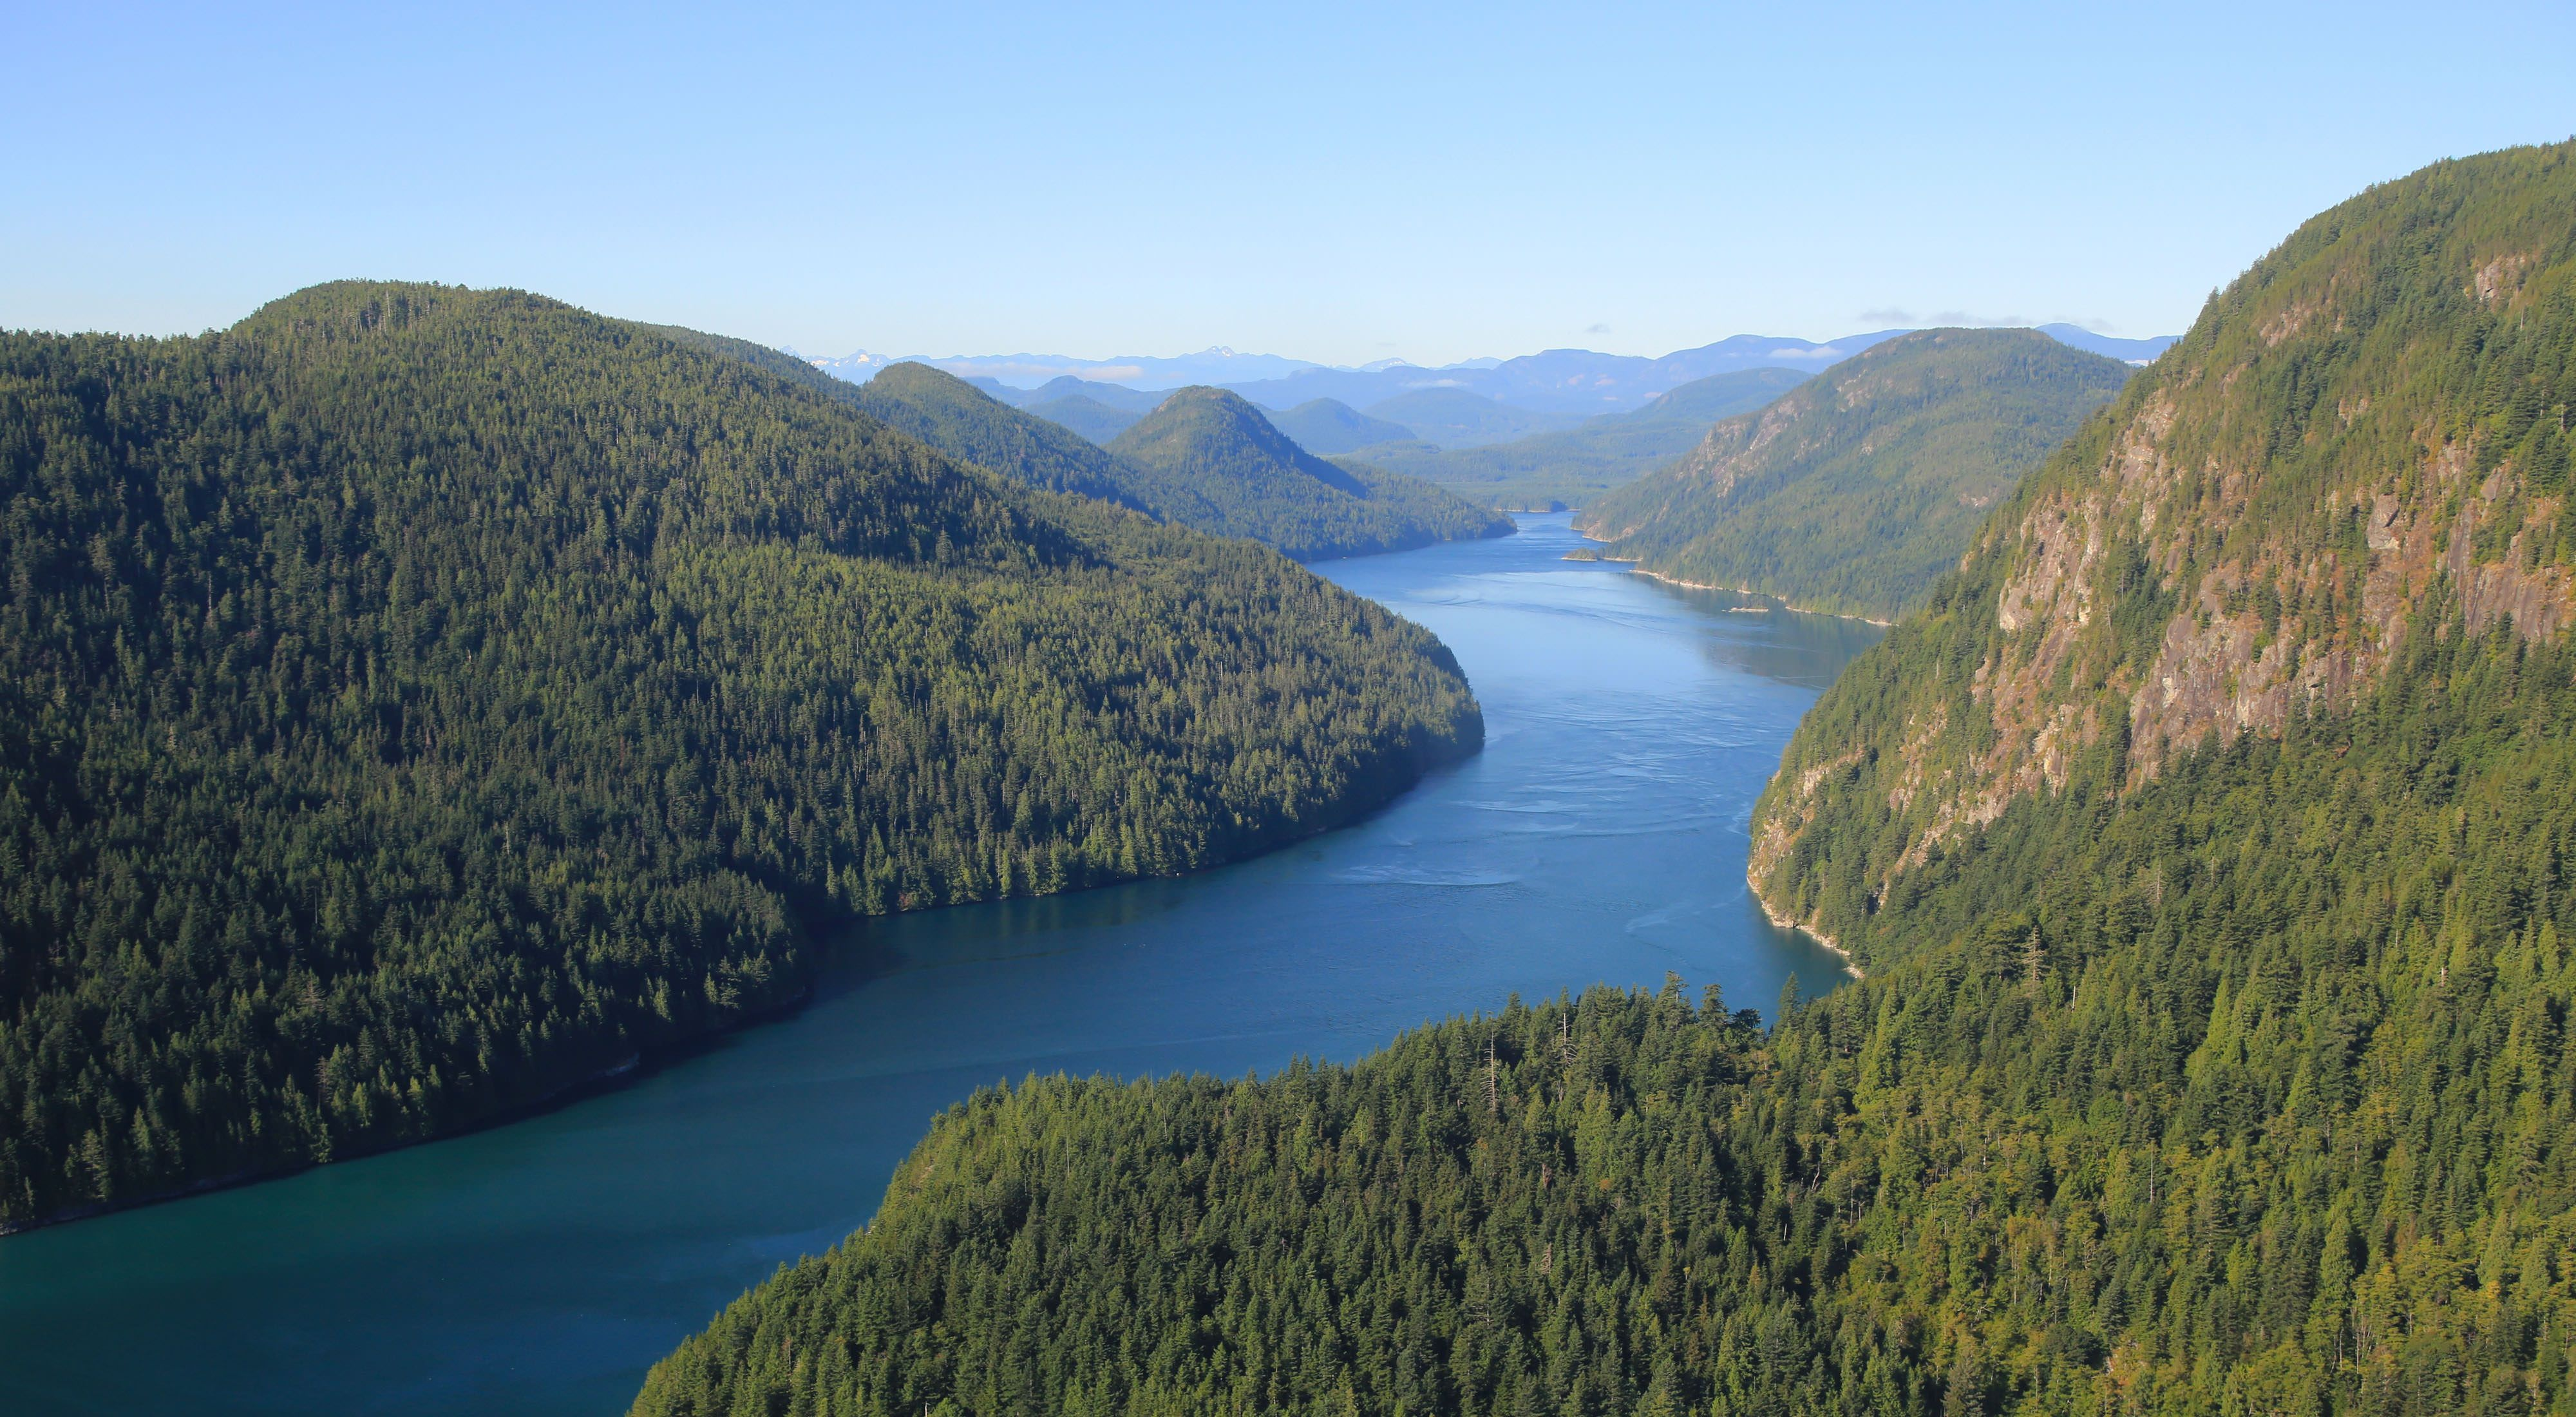 Nature United supports First Nations-led land-use planning and sustainable economic development throughout this region.